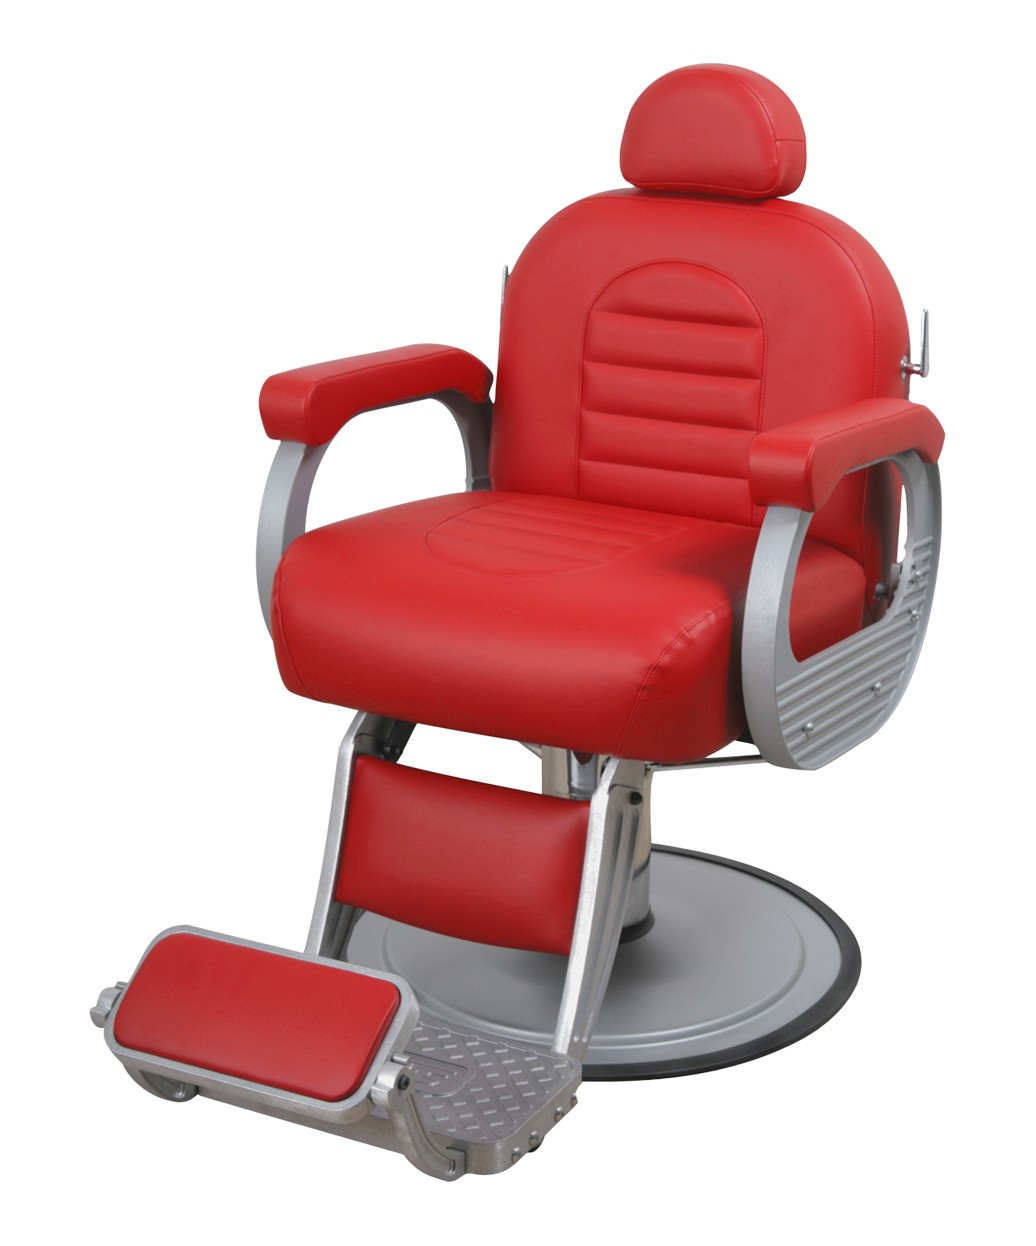 B30 Bristol Barber Chair, B Series